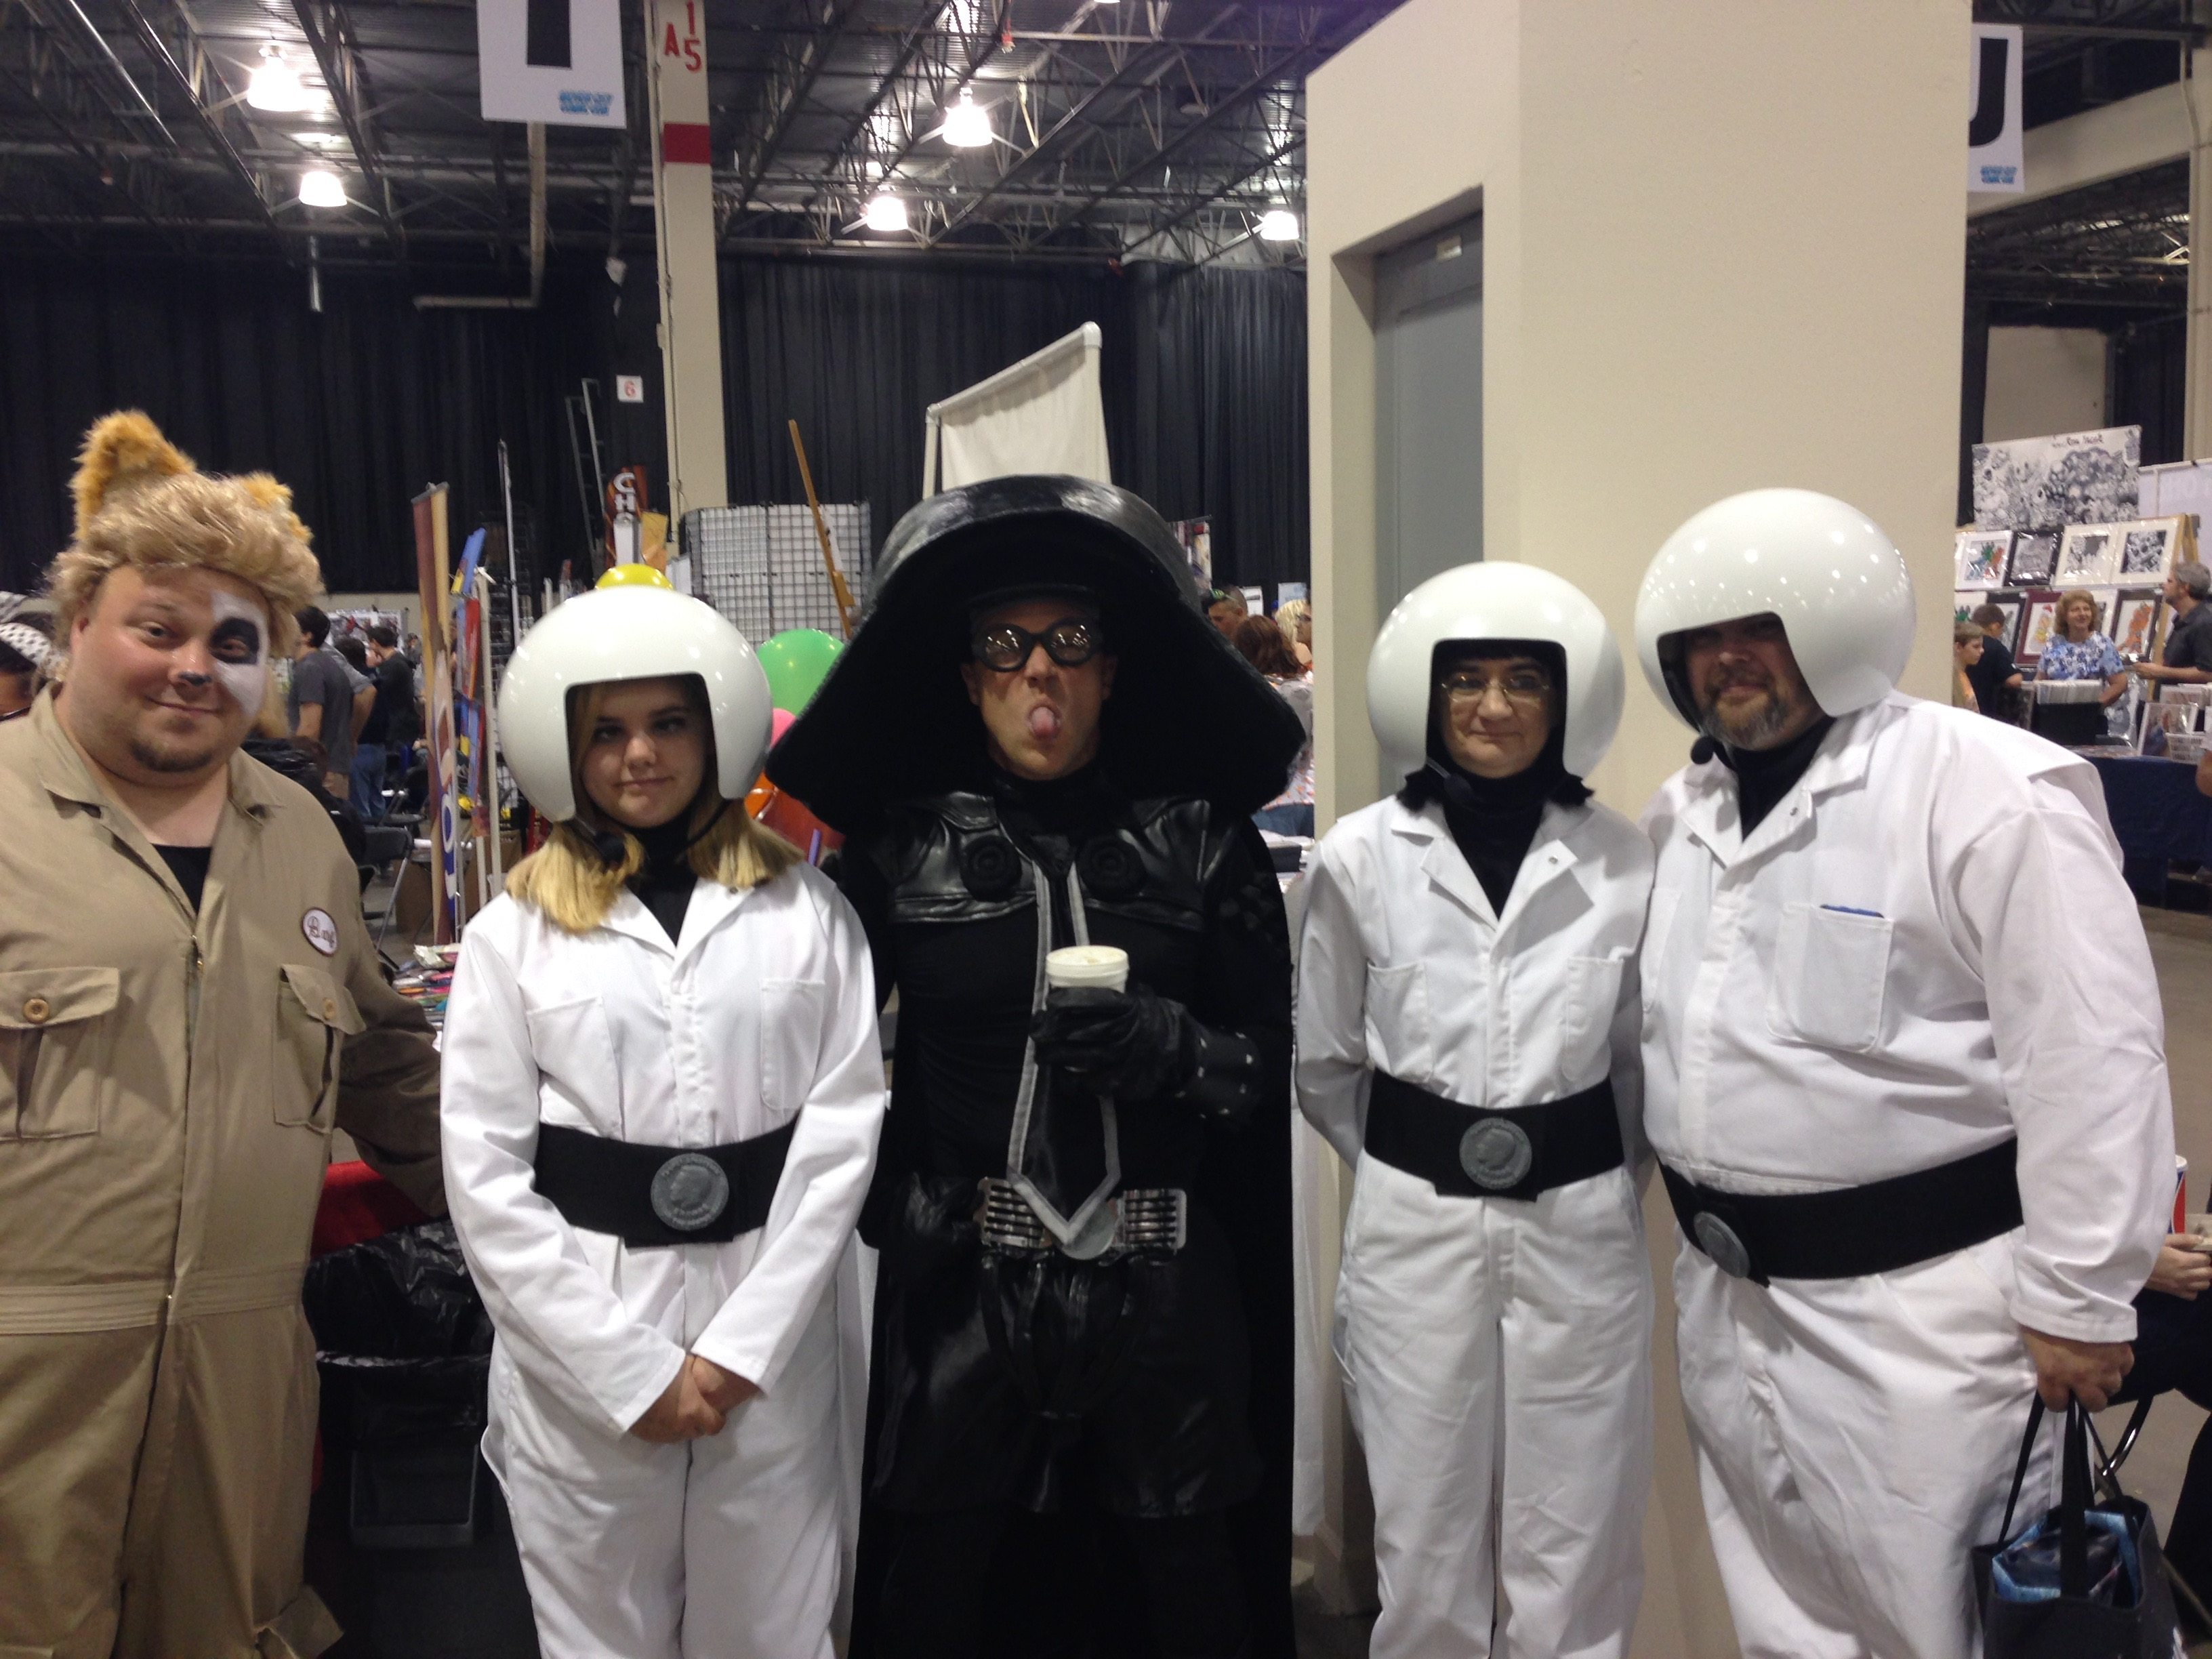 Space Balls Cosplay